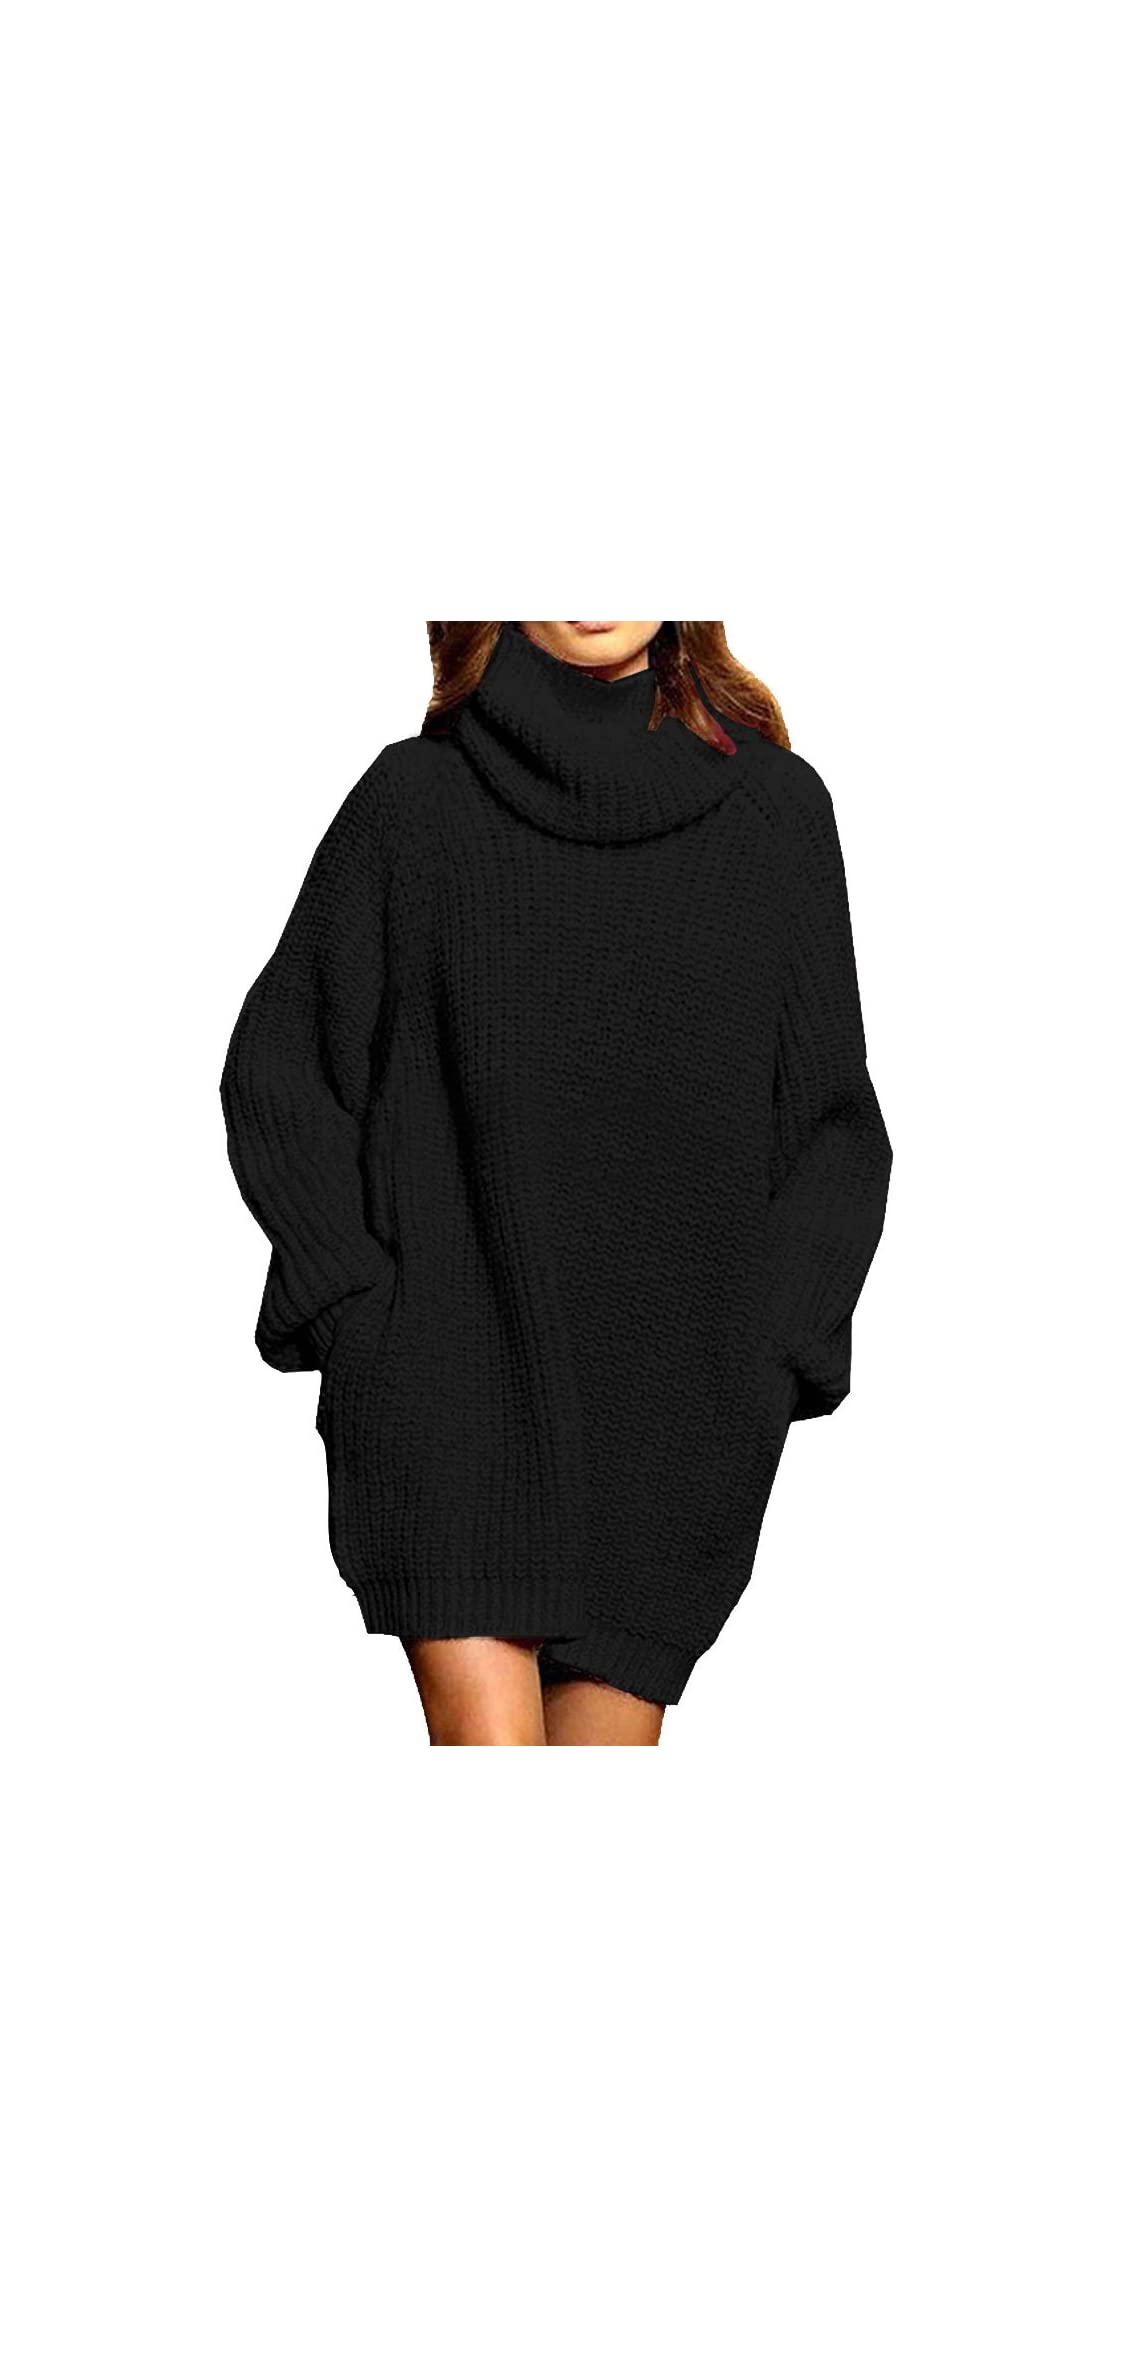 Women's Loose Oversize Turtleneck Wool Long Pullover